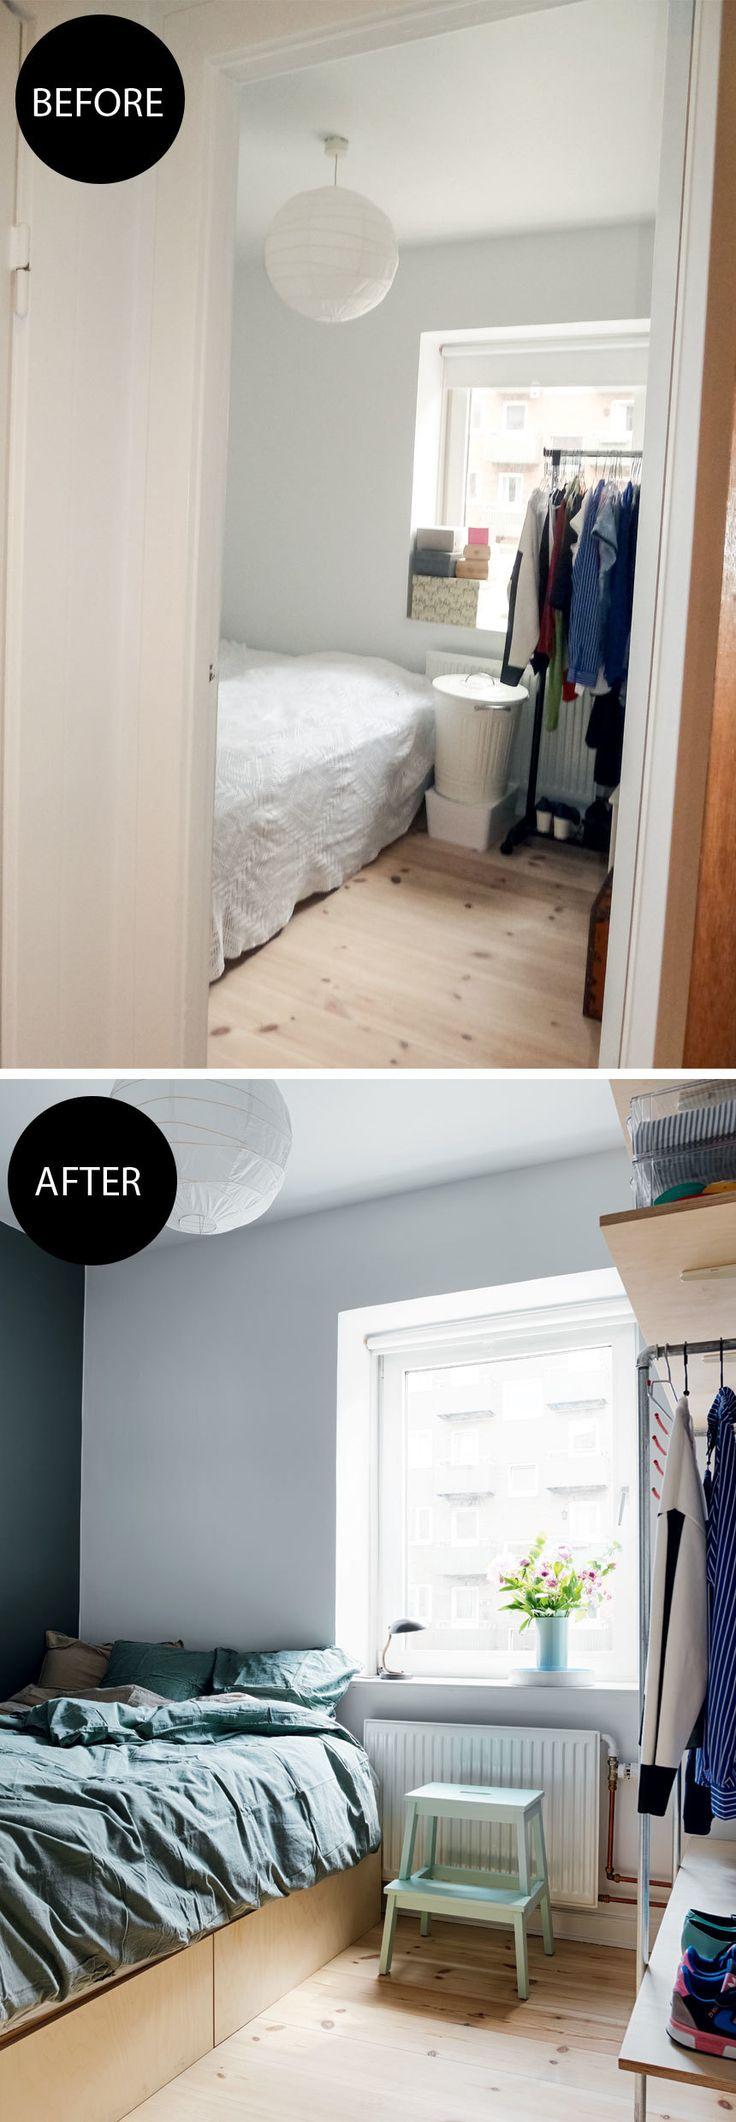 This small bedroom was remodeled with smart storage solutions and beautiful textiles. See the transformation here.